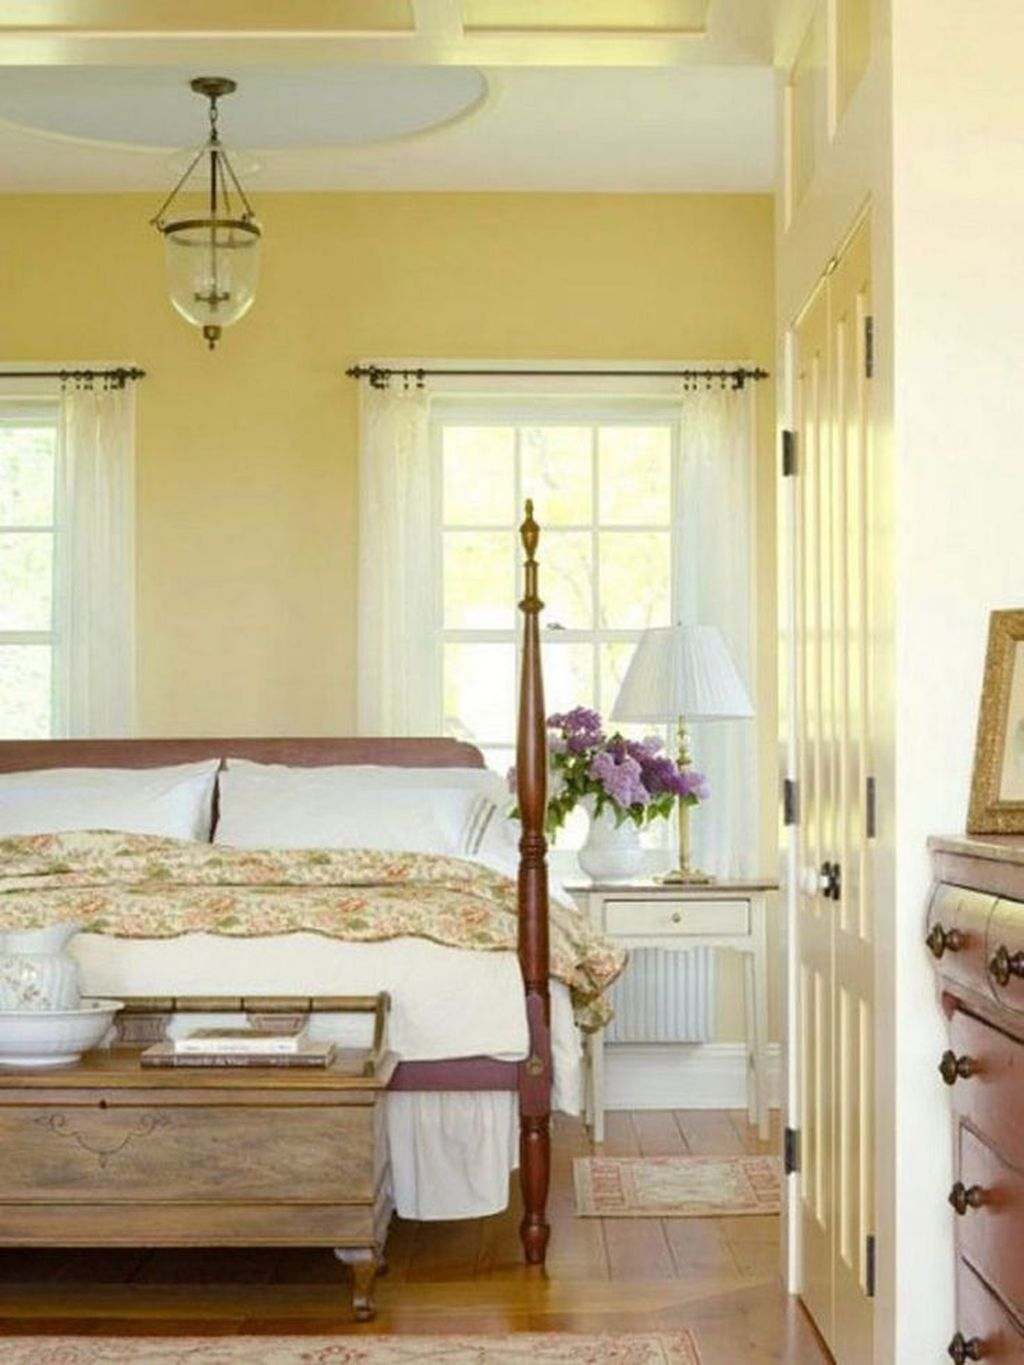 Cool French Country Master Bedroom Design Ideas With Farmhouse Style 26